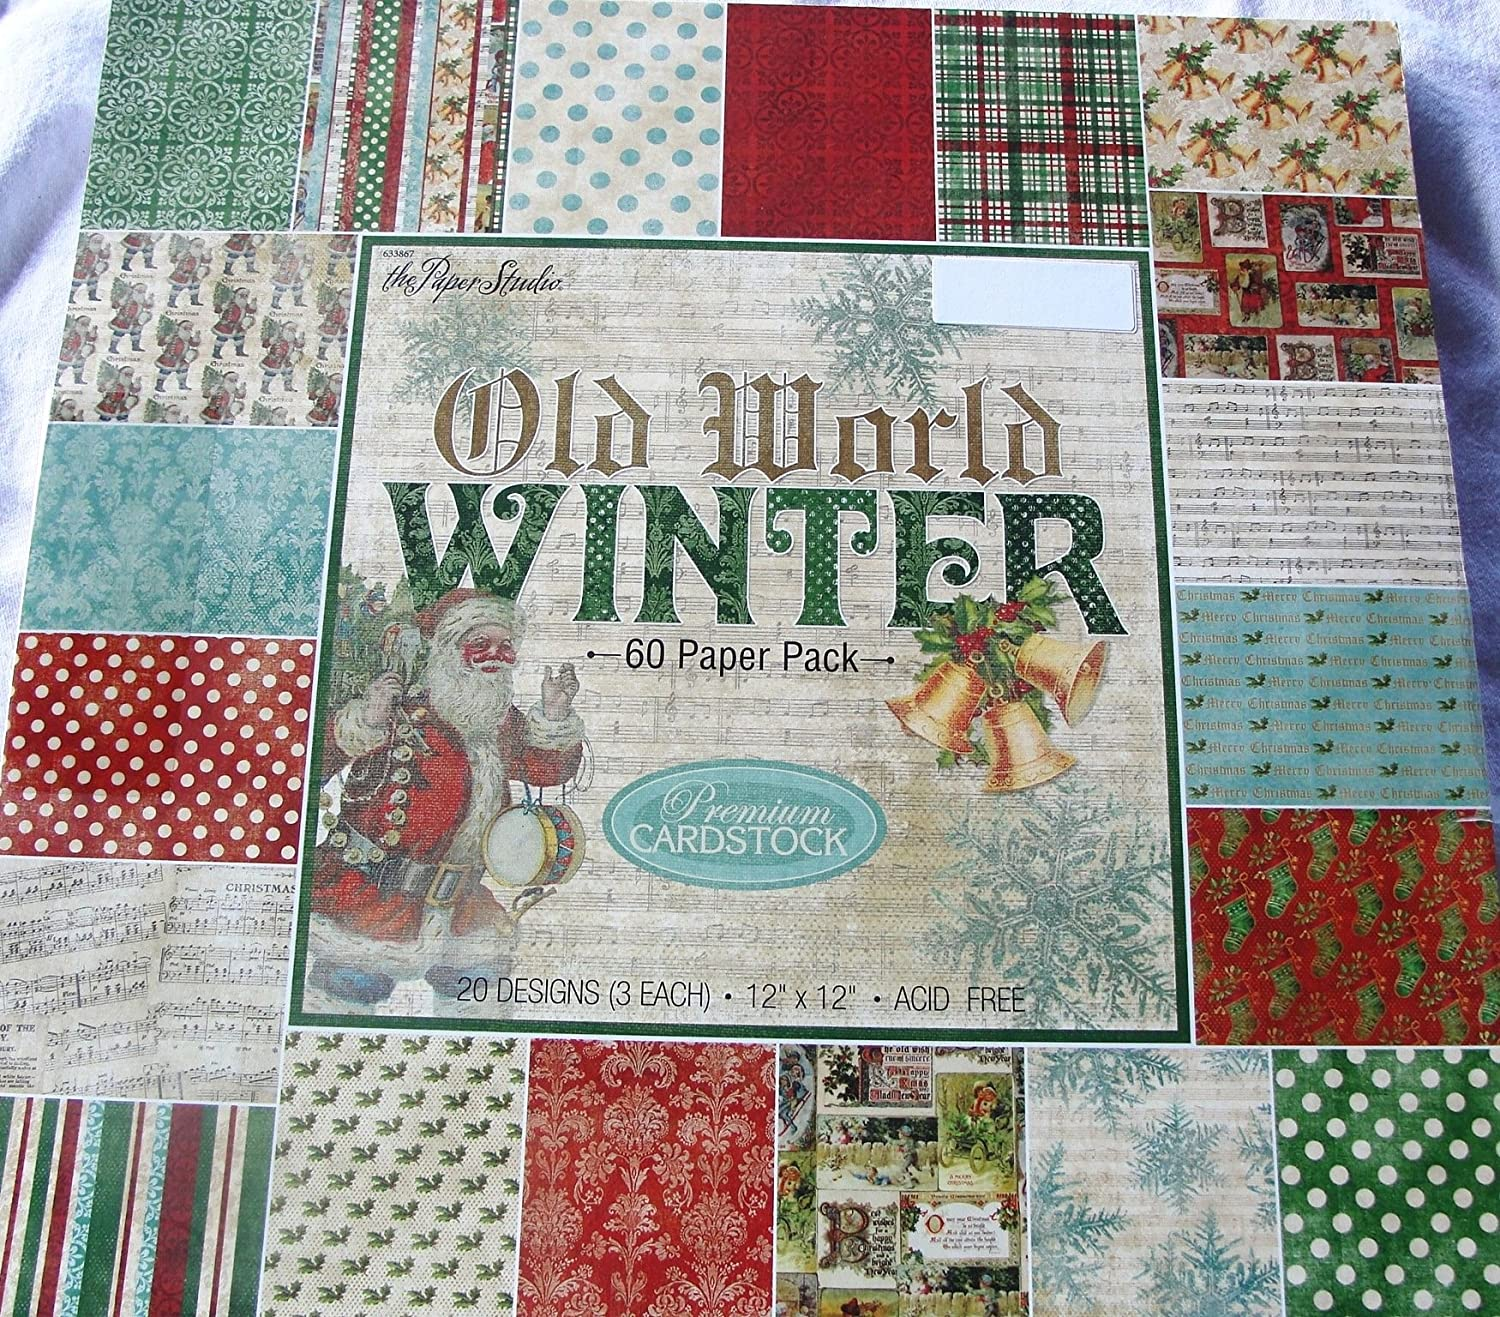 Old World Winter Christmas Scrapbooking Cardmaking Paper Pack 12x12